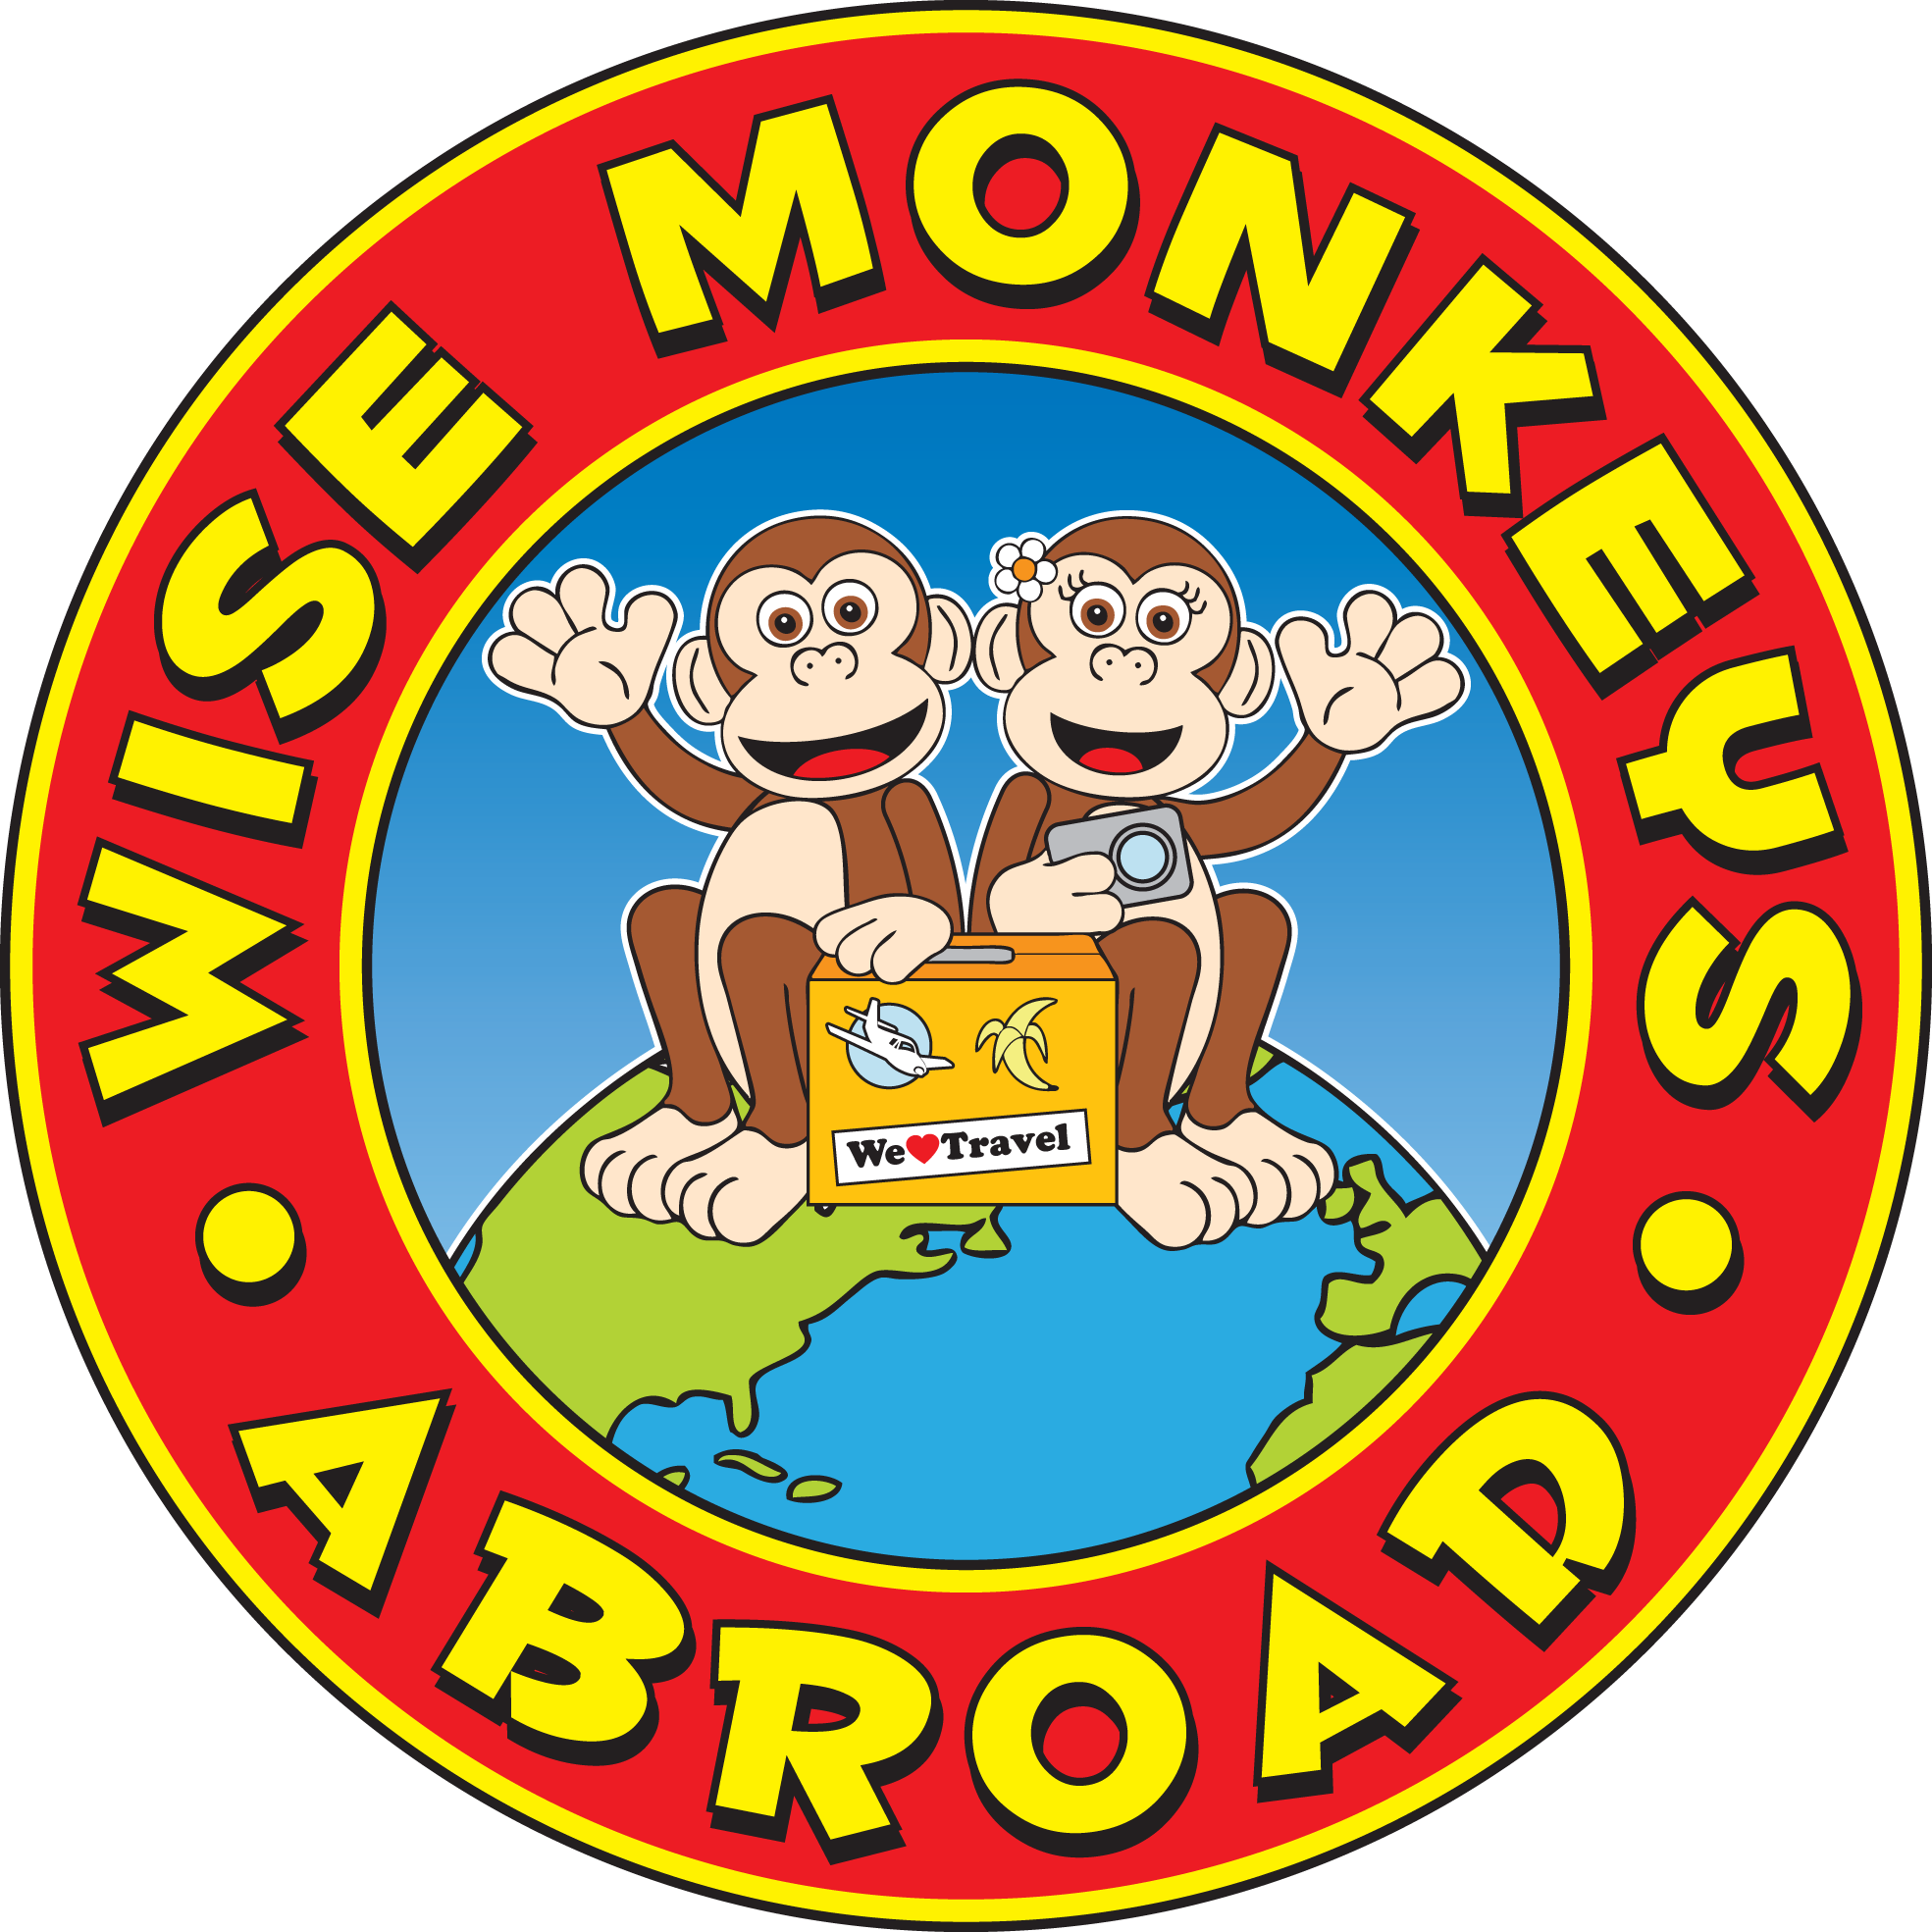 Film clipart movie prop. Wise monkeys abroad